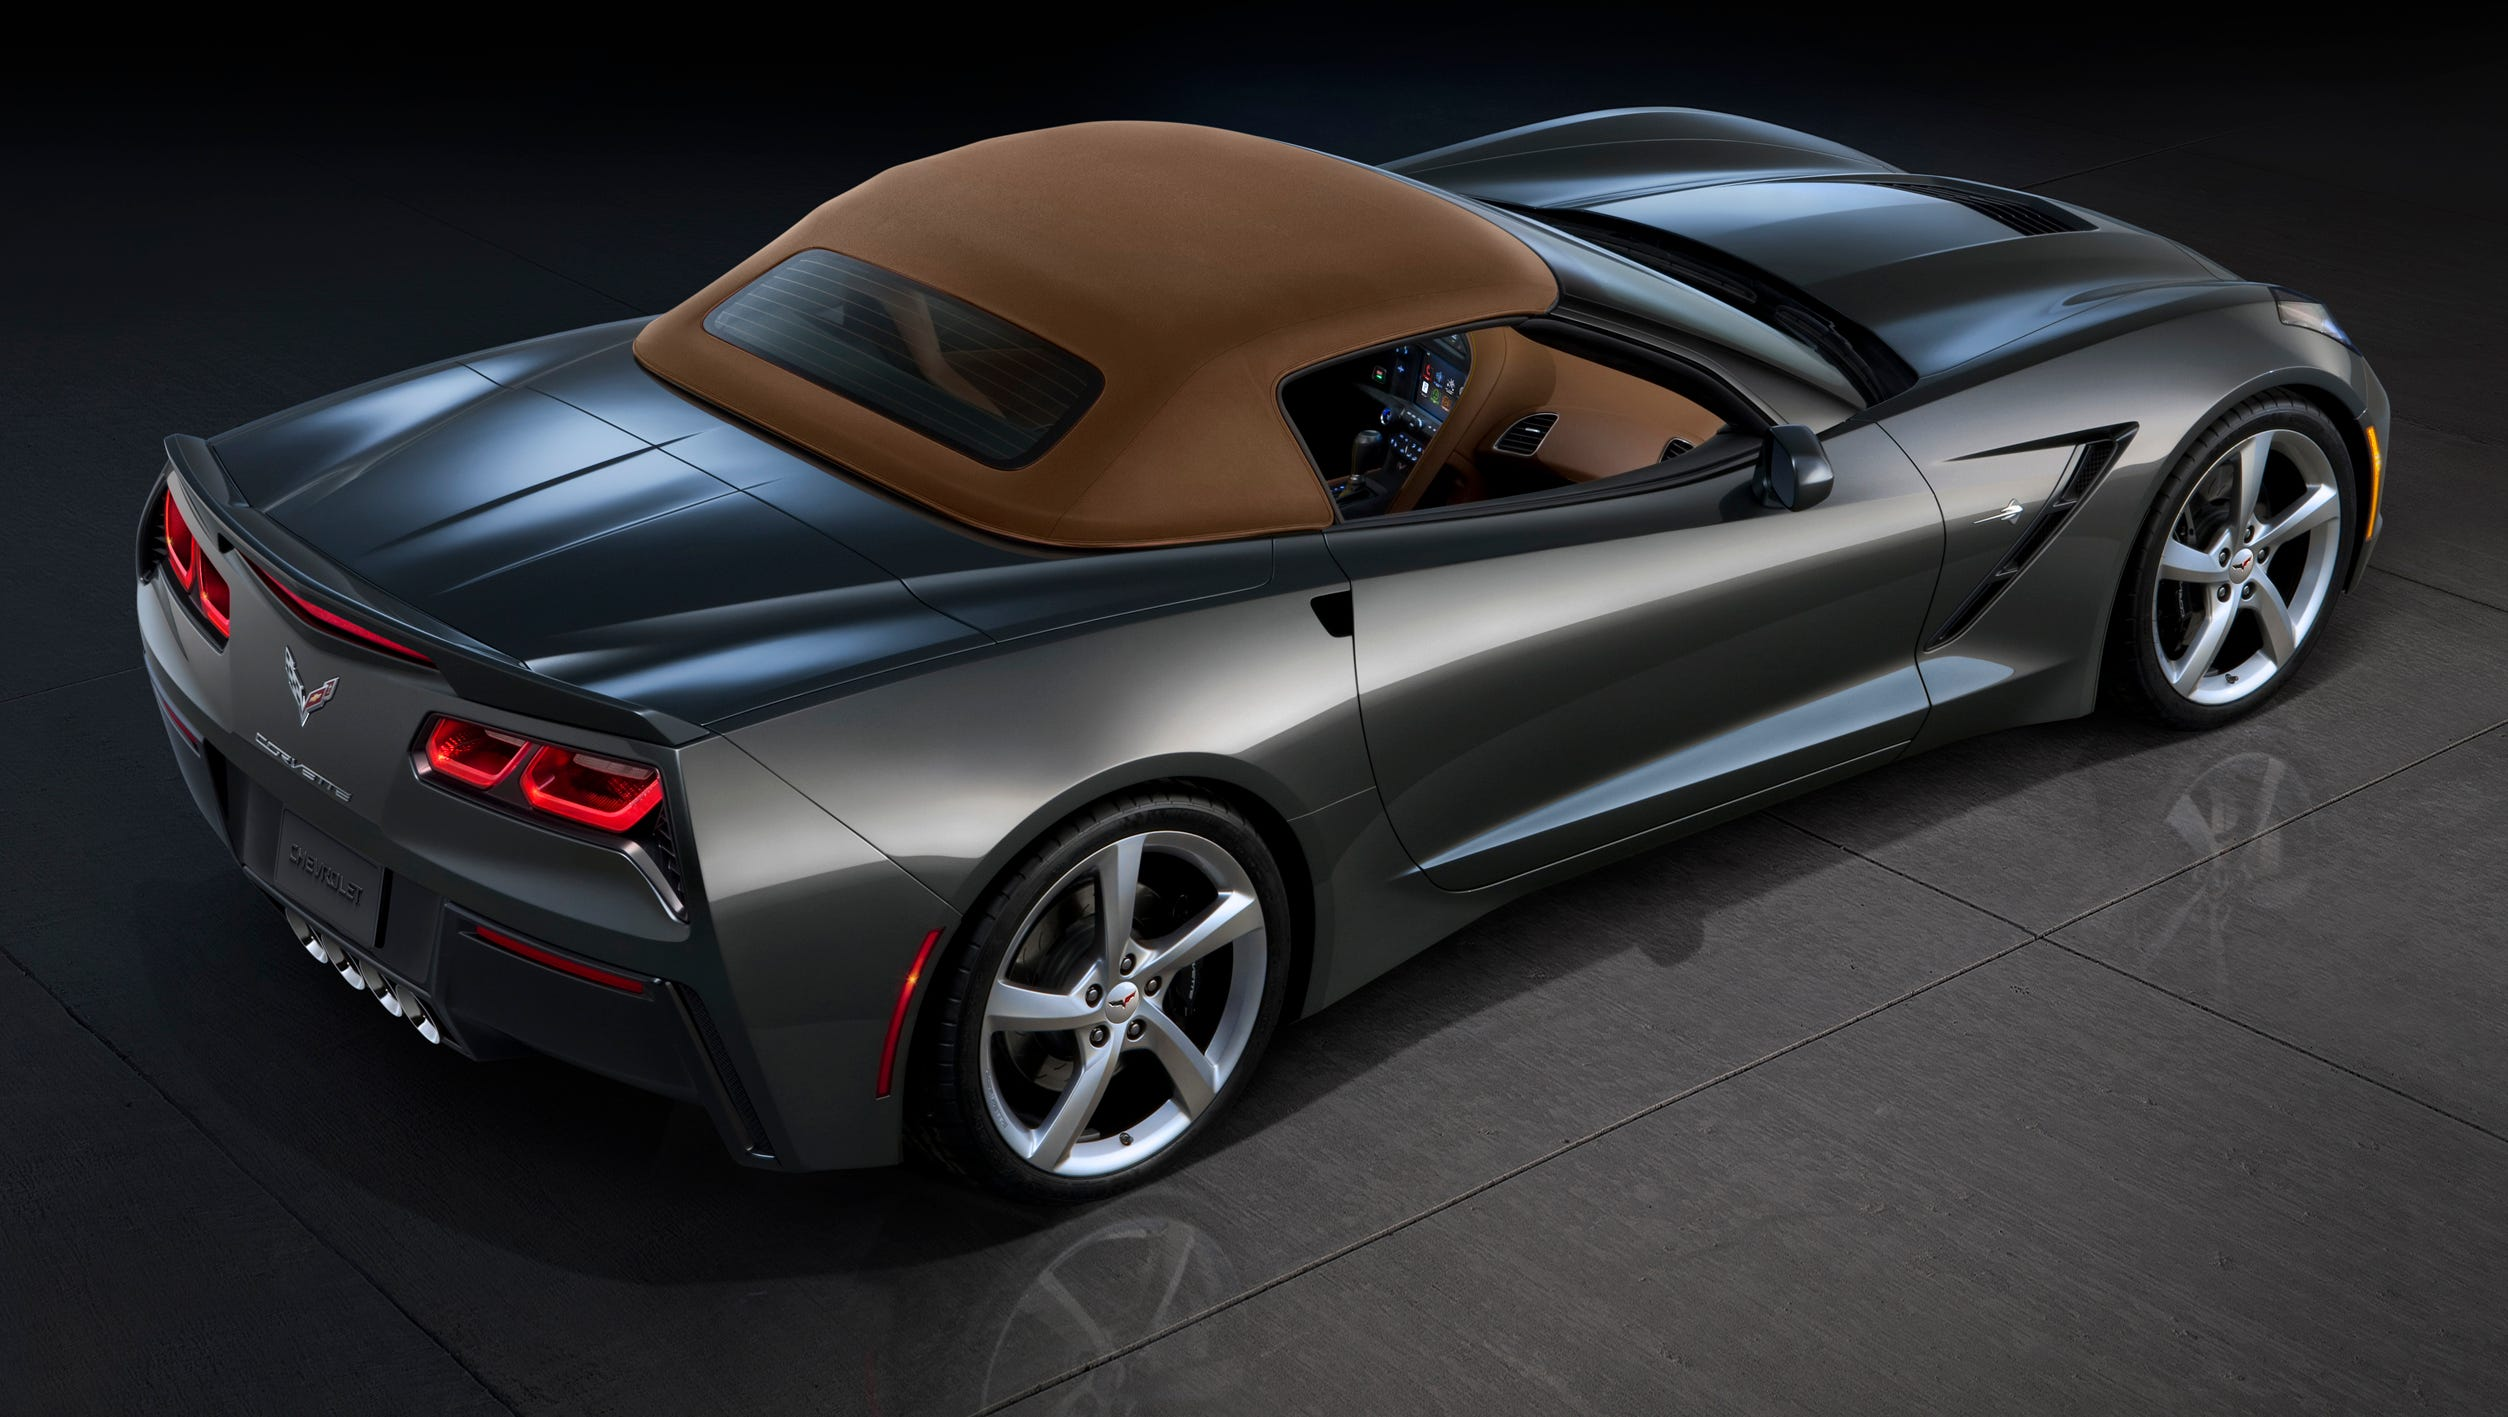 The 2014 Corvette Stingray convertible with the top up. It is a three-ply fabric top woth acoustic padding for noise control and a glass rear window.